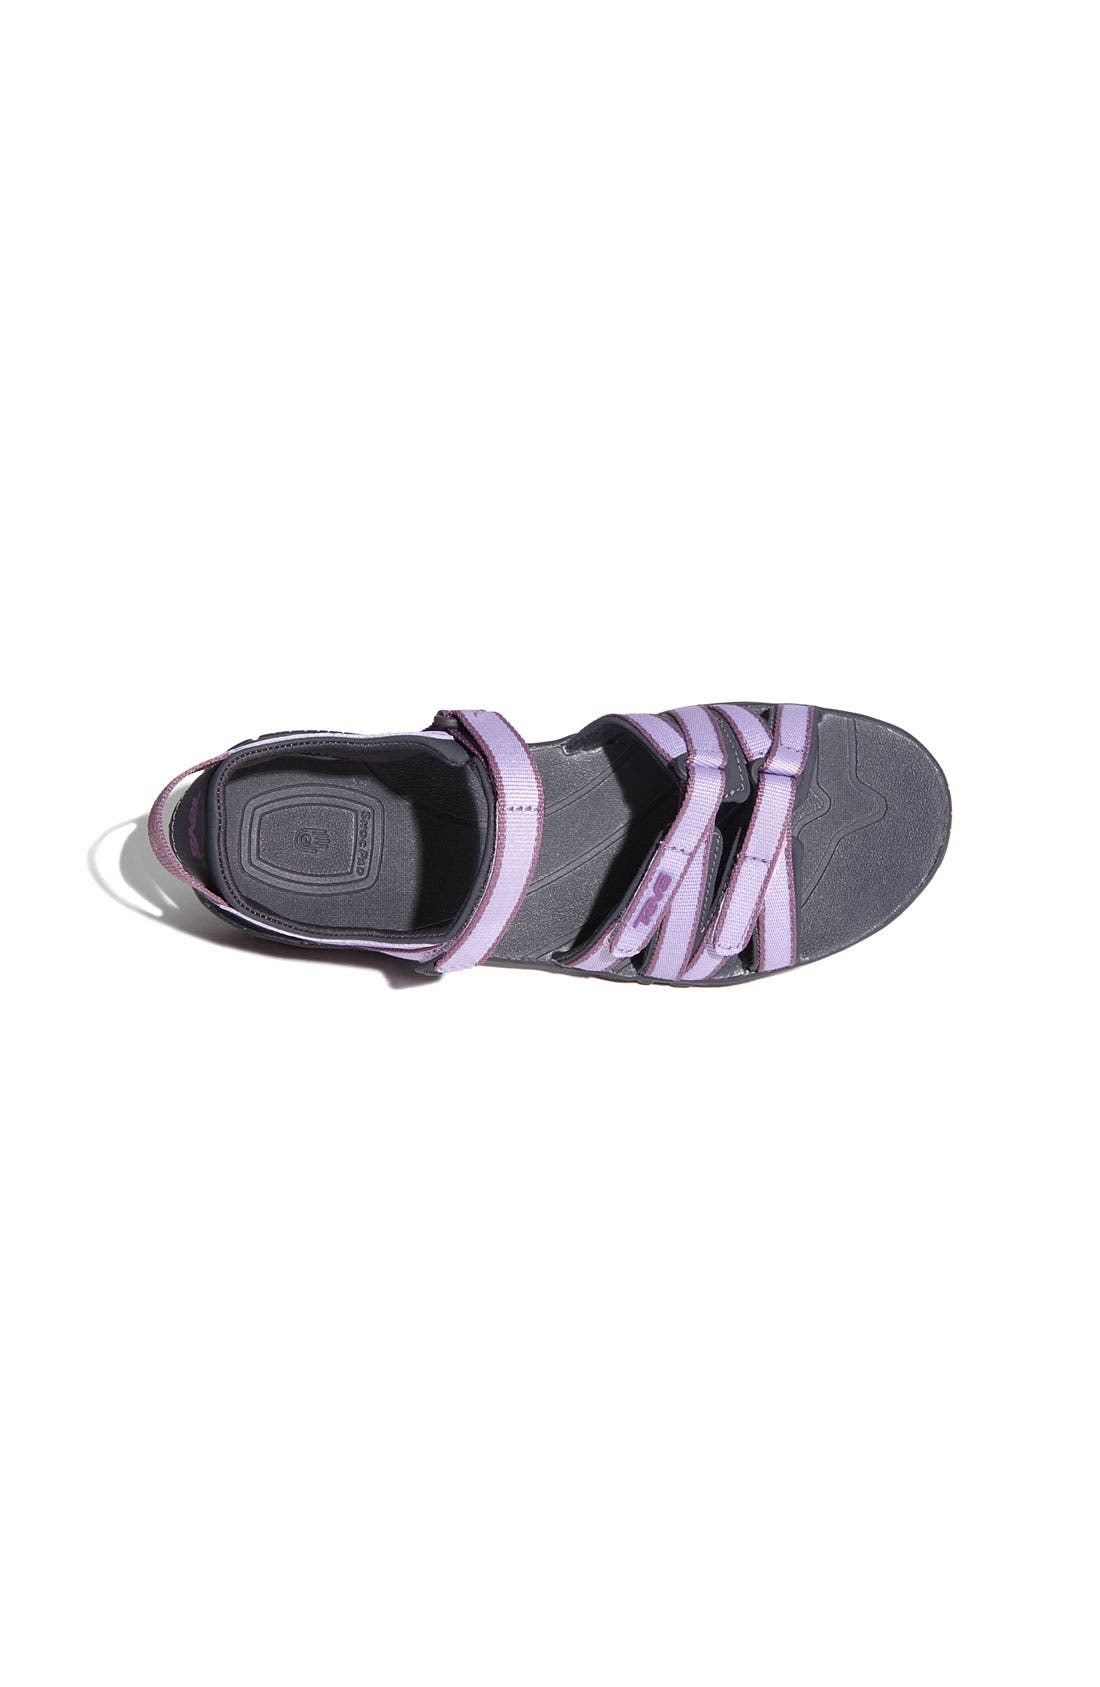 Alternate Image 3  - Teva 'Tirra' Sandal (Toddler, Little Kid & Big Kid)